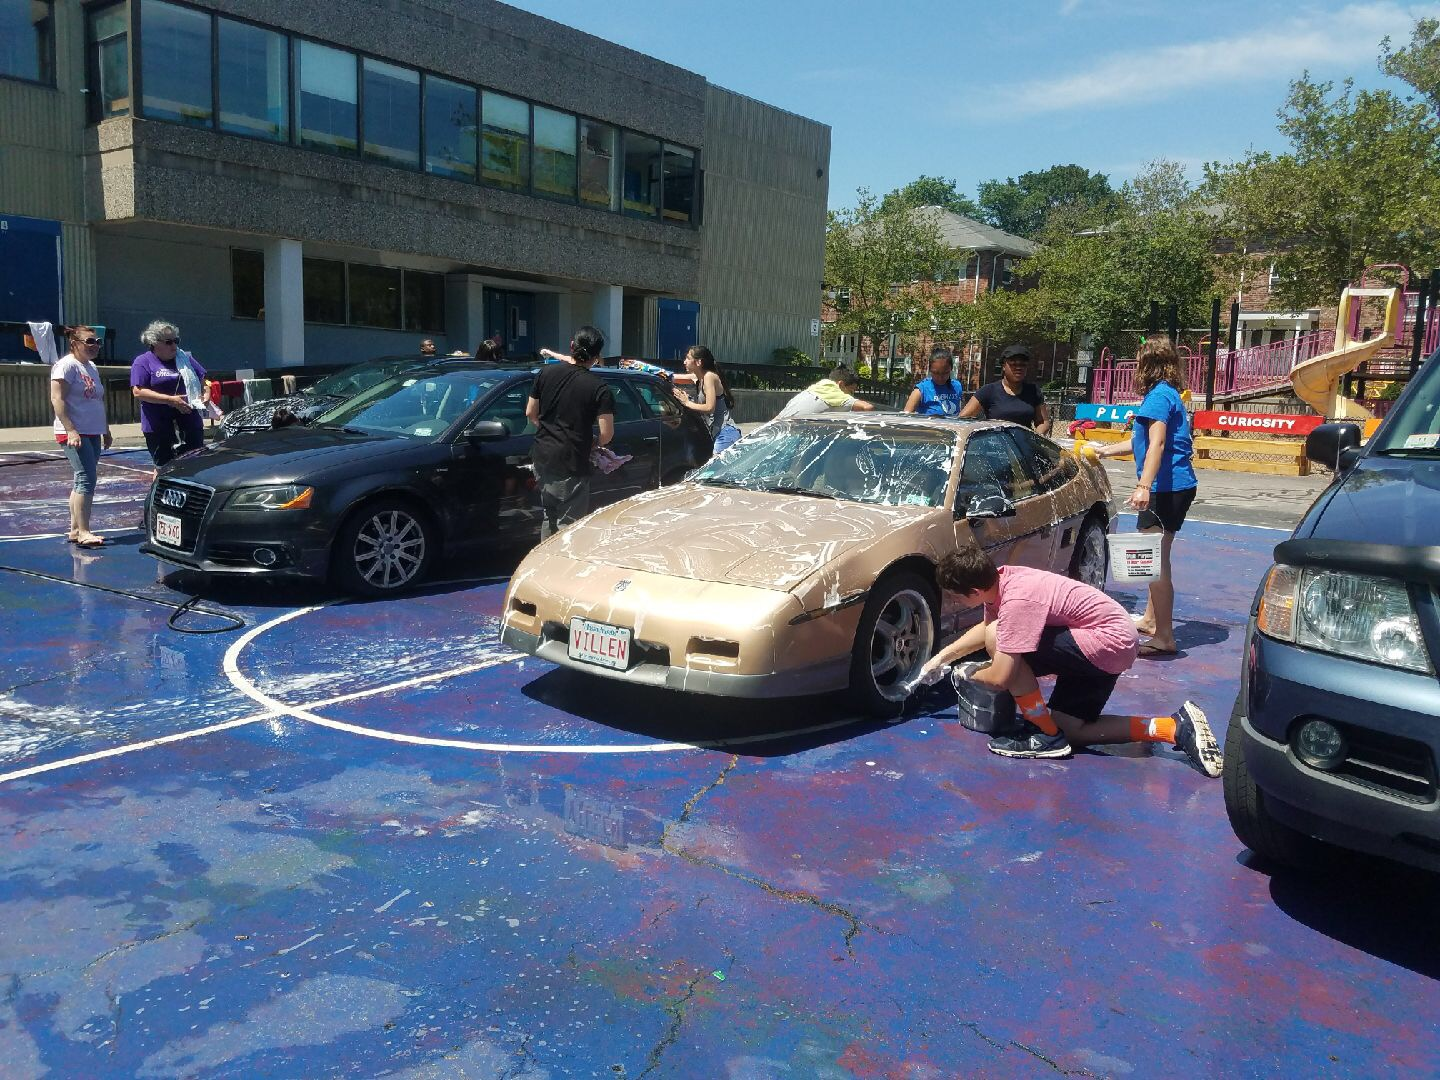 Winter Hill School Car Wash Moving Forward Fundraiser Event The